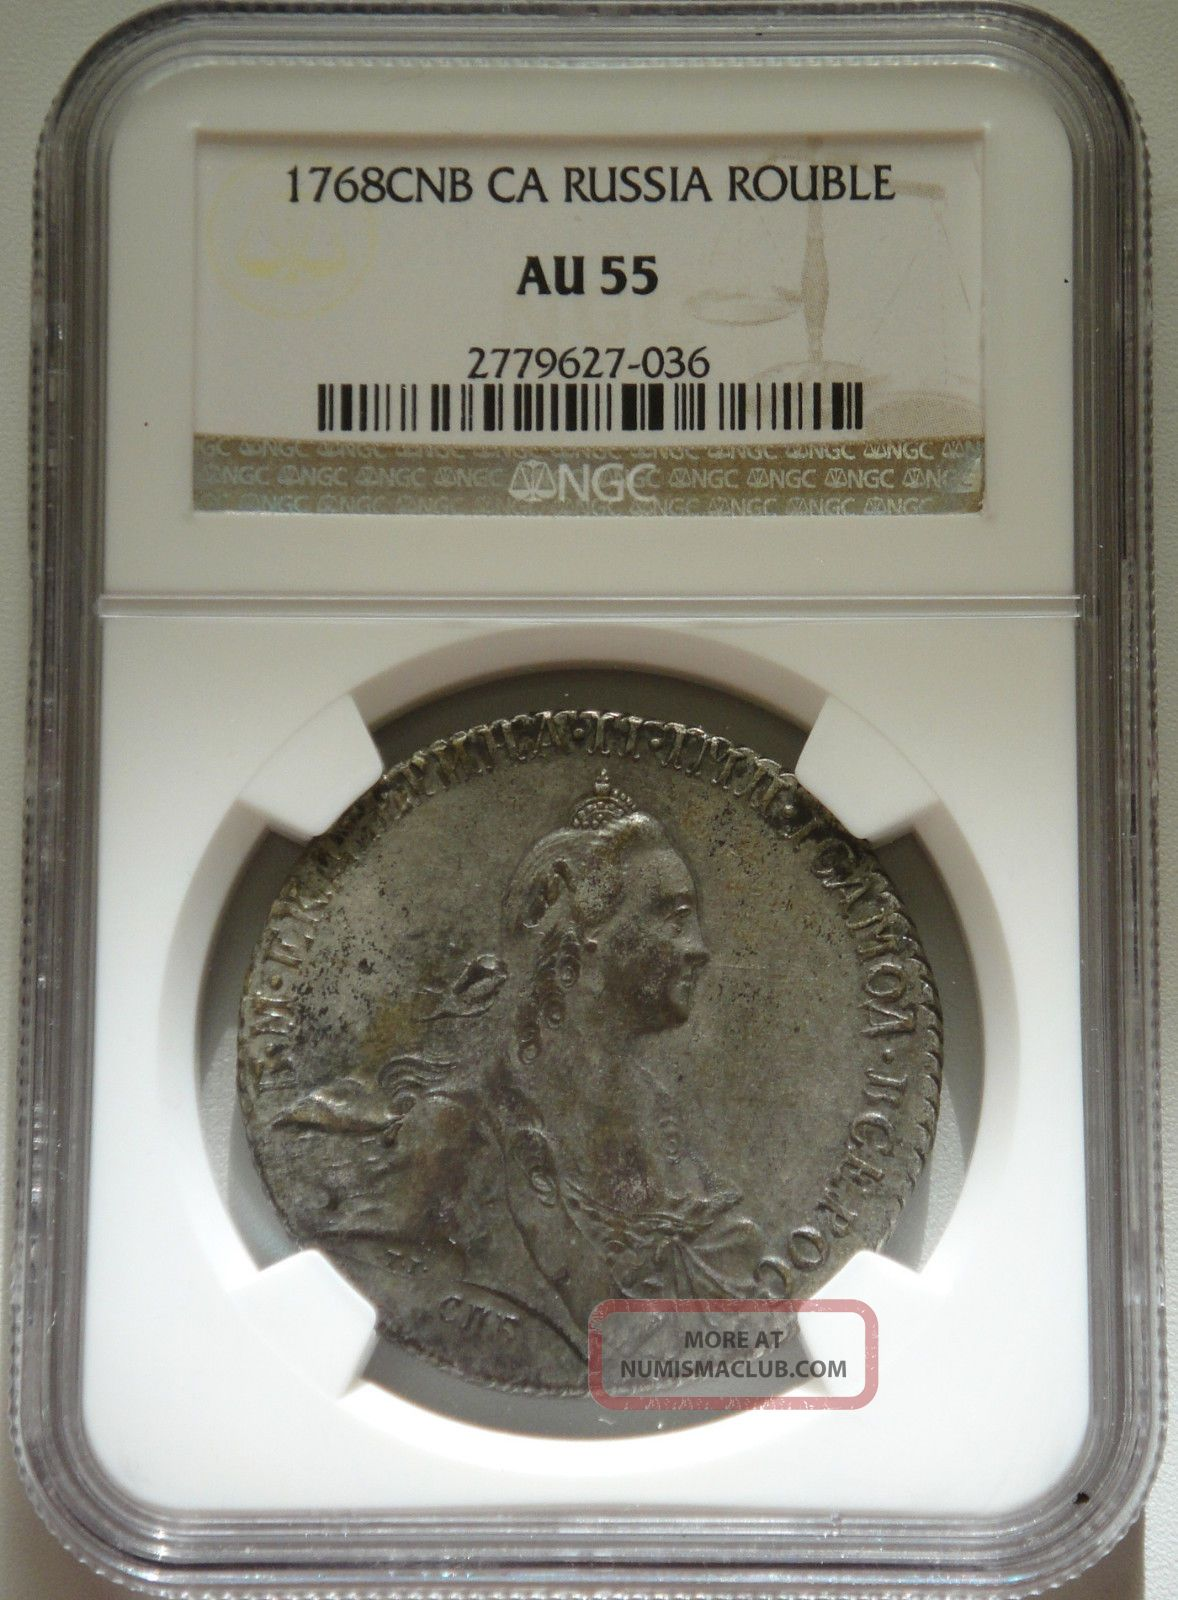 Russia Rouble 1768 Ca Russian Ruble Silver Coin Ngc Au